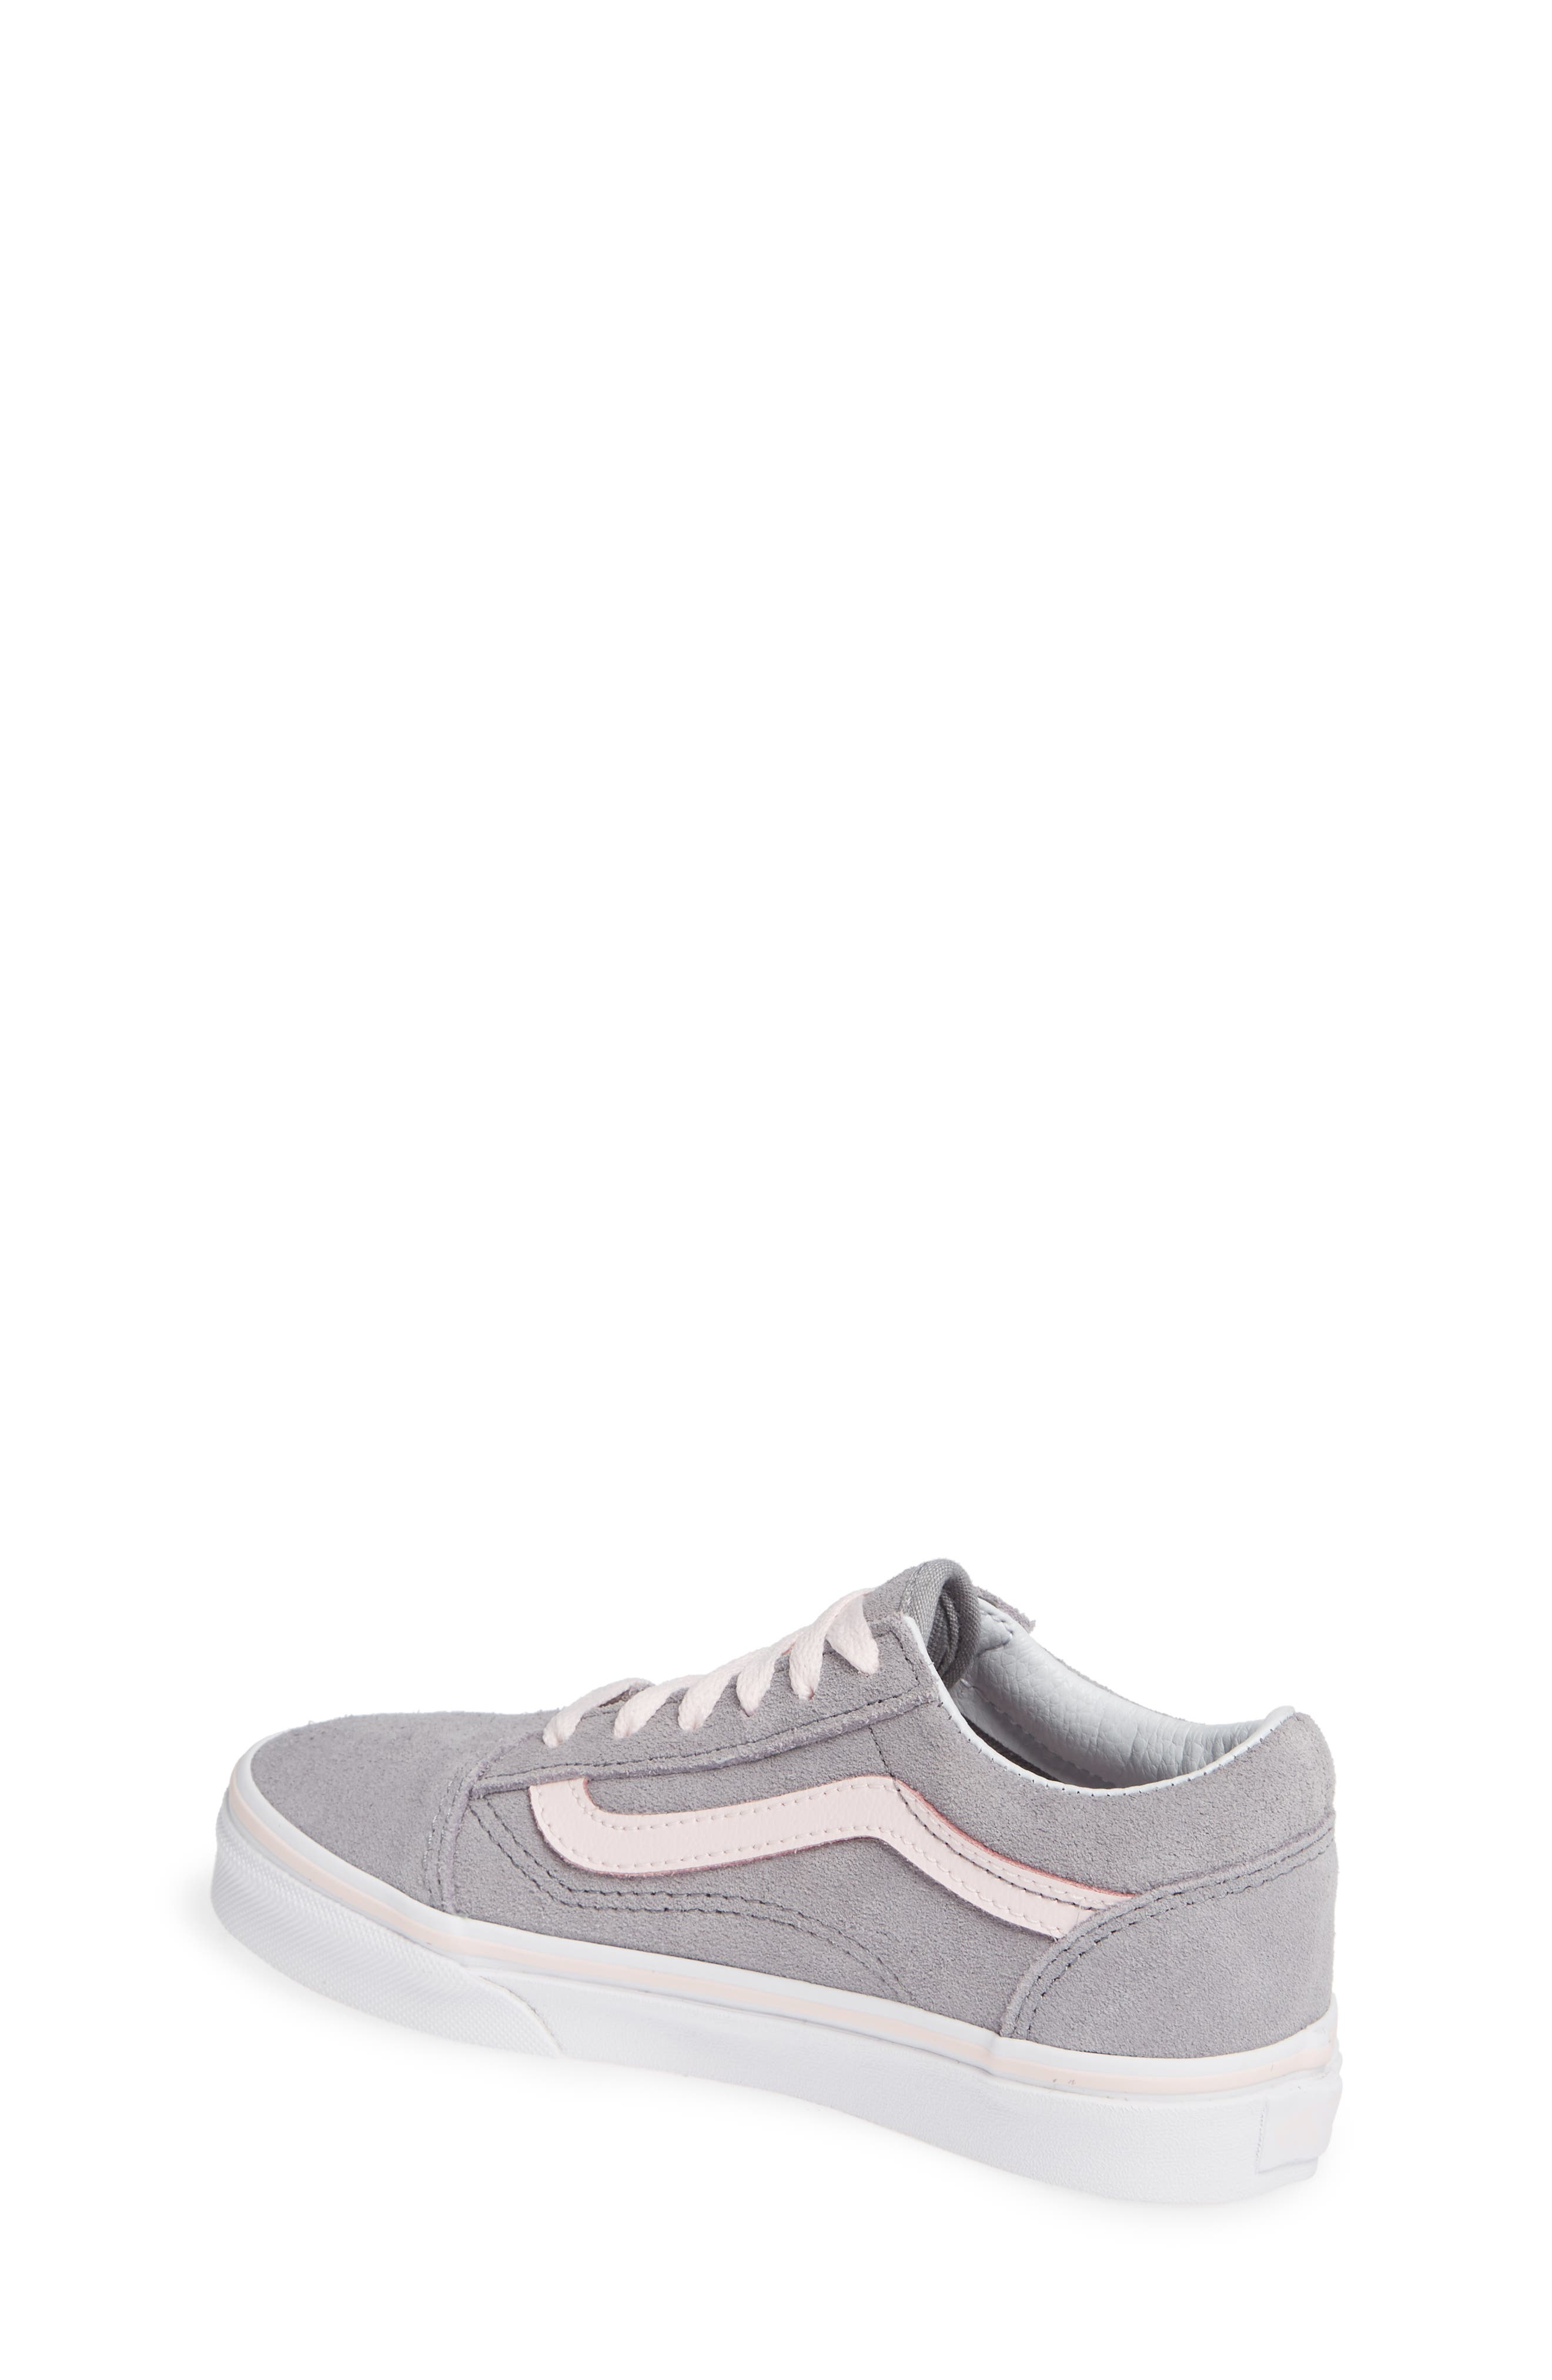 Old Skool Sneaker,                             Alternate thumbnail 2, color,                             SUEDE ALLOY/ PINK/ TRUE WHITE